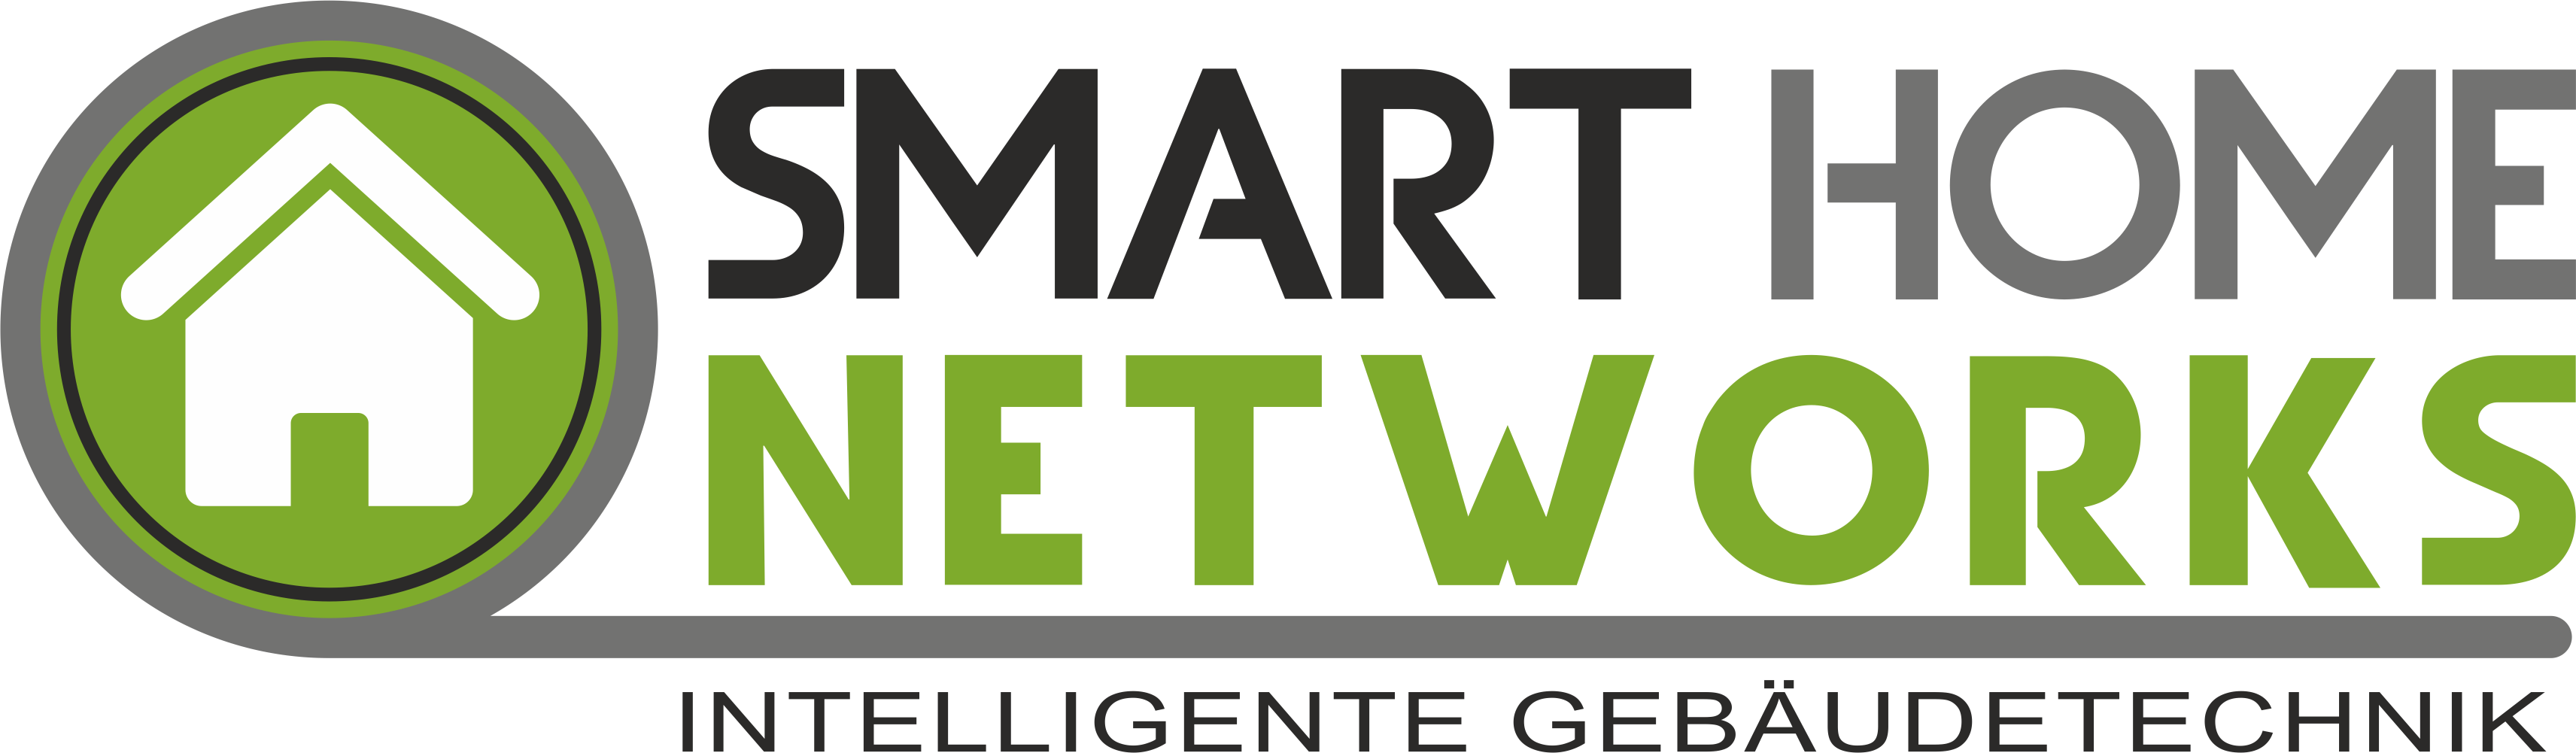 Smart Home Networks GmbH